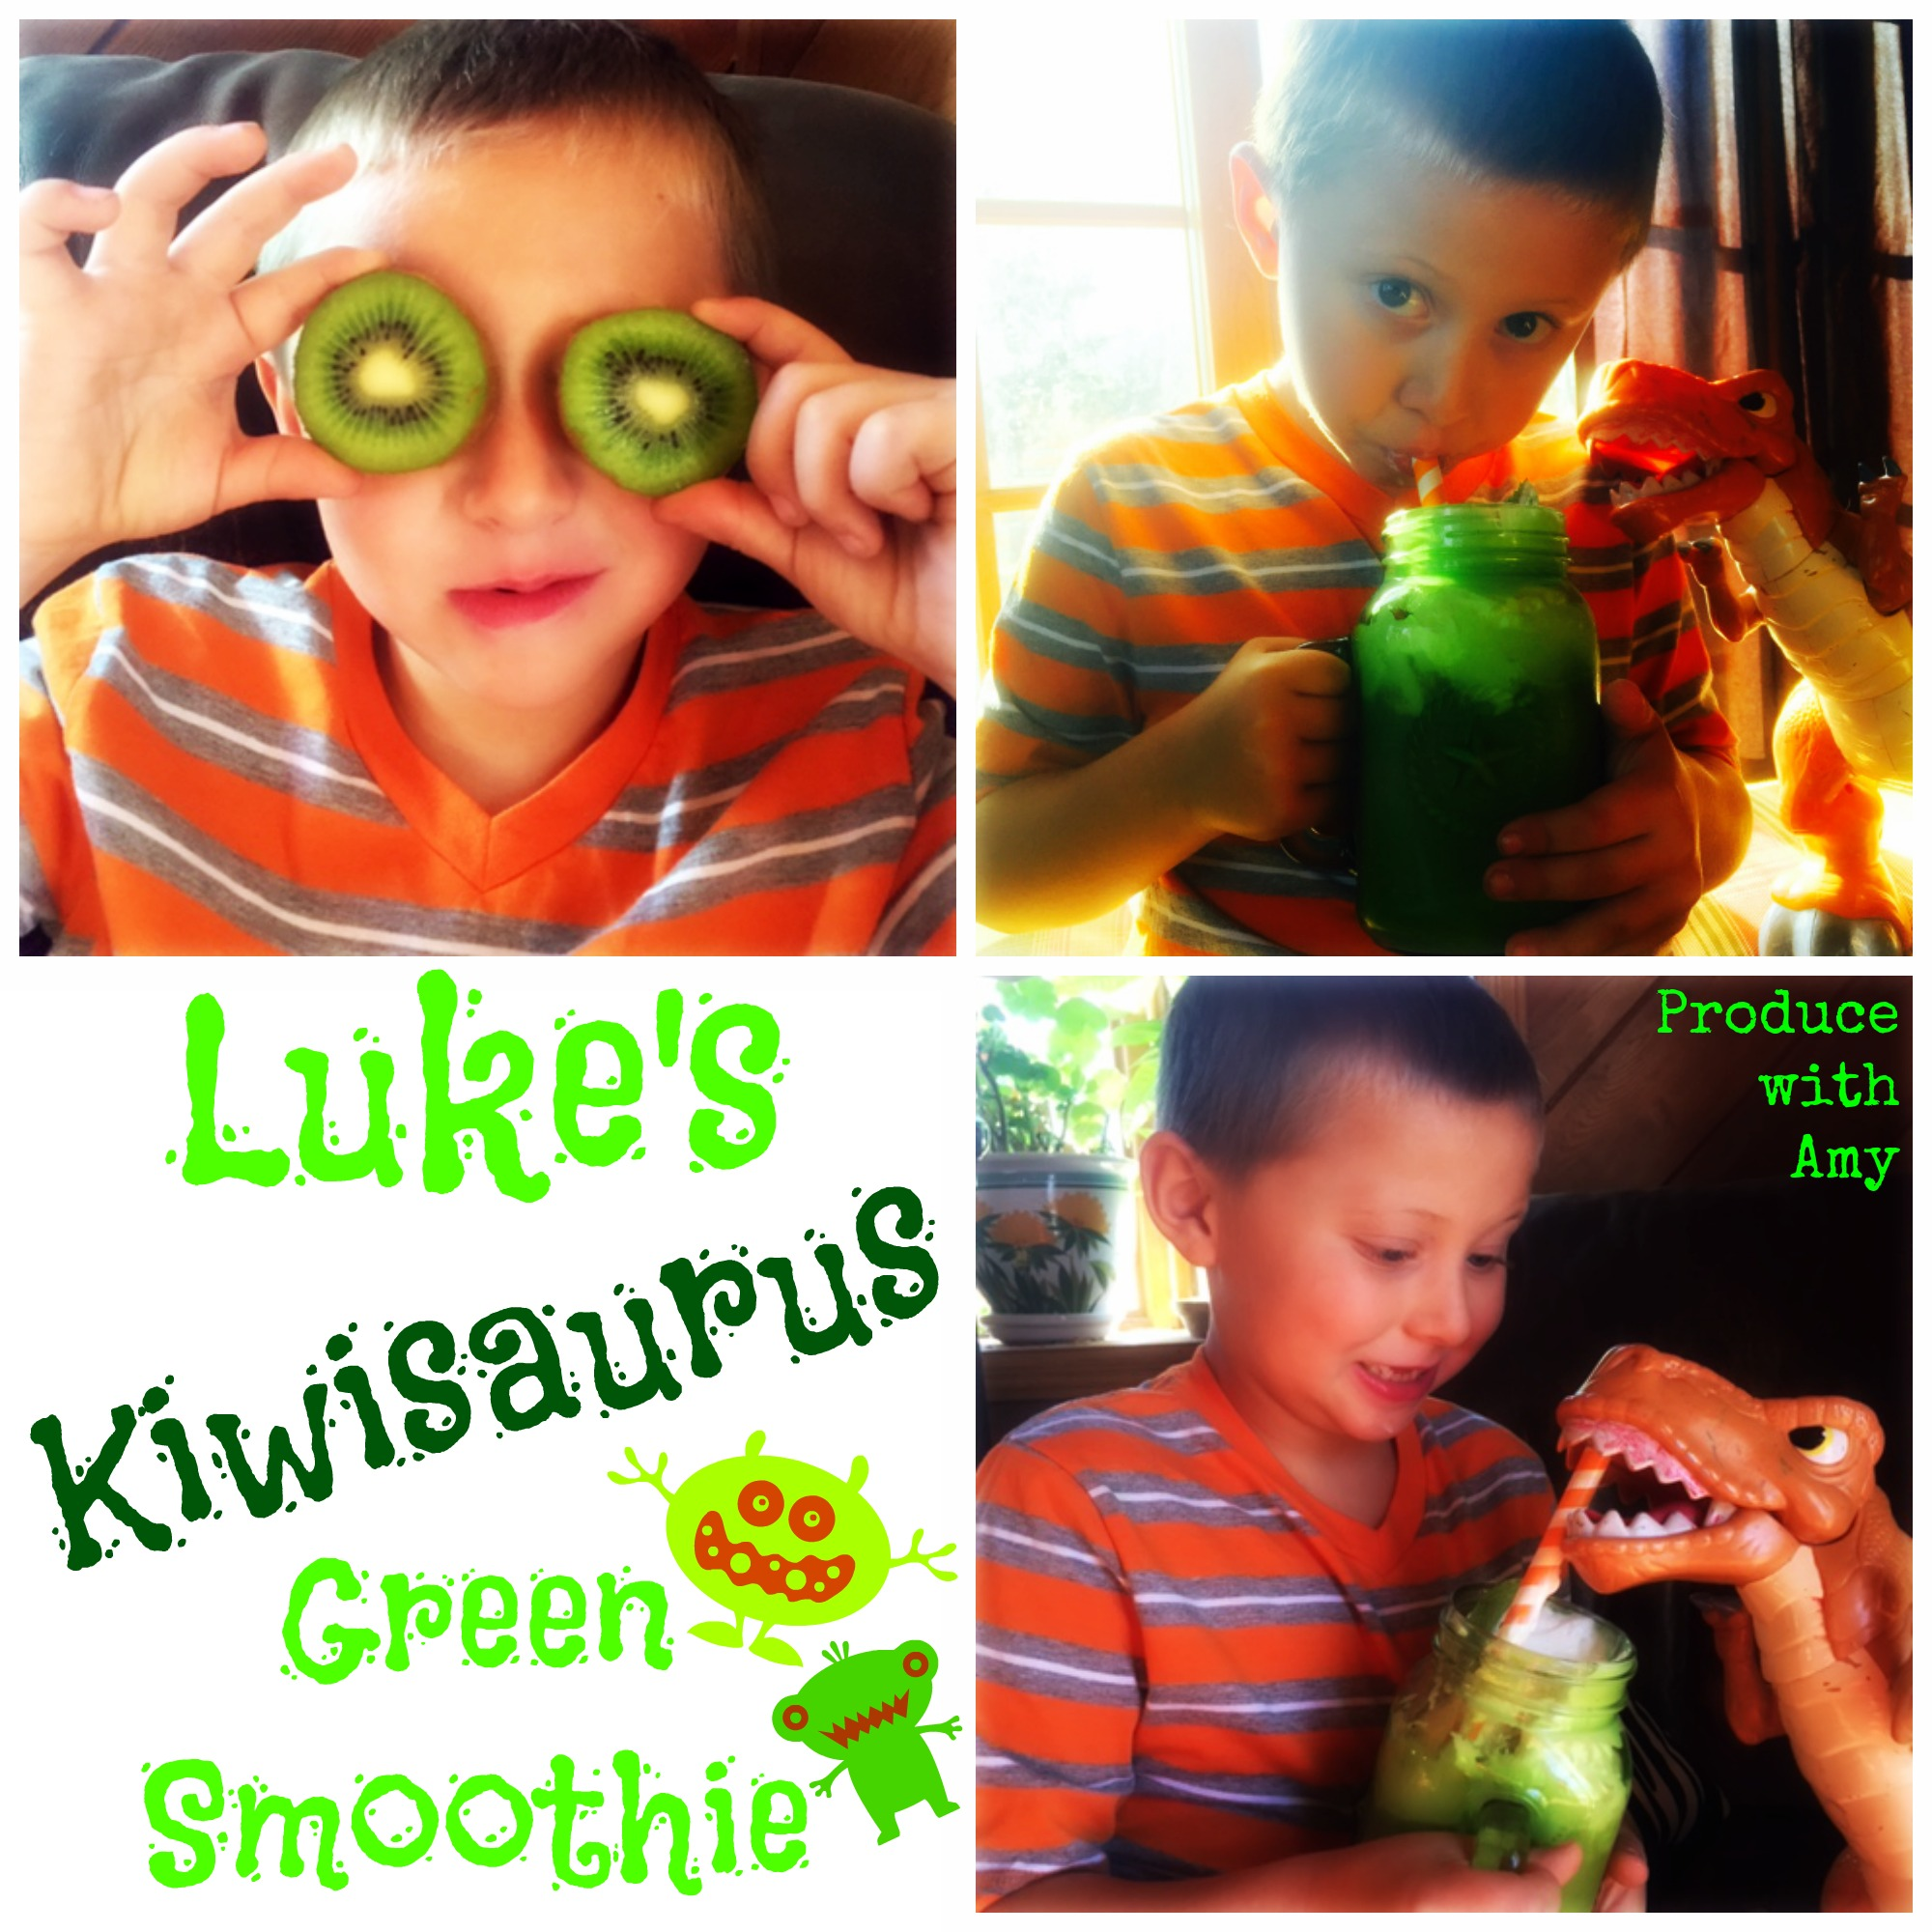 Luke's Kiwisaurus Green Smoothie by Produce with Amy